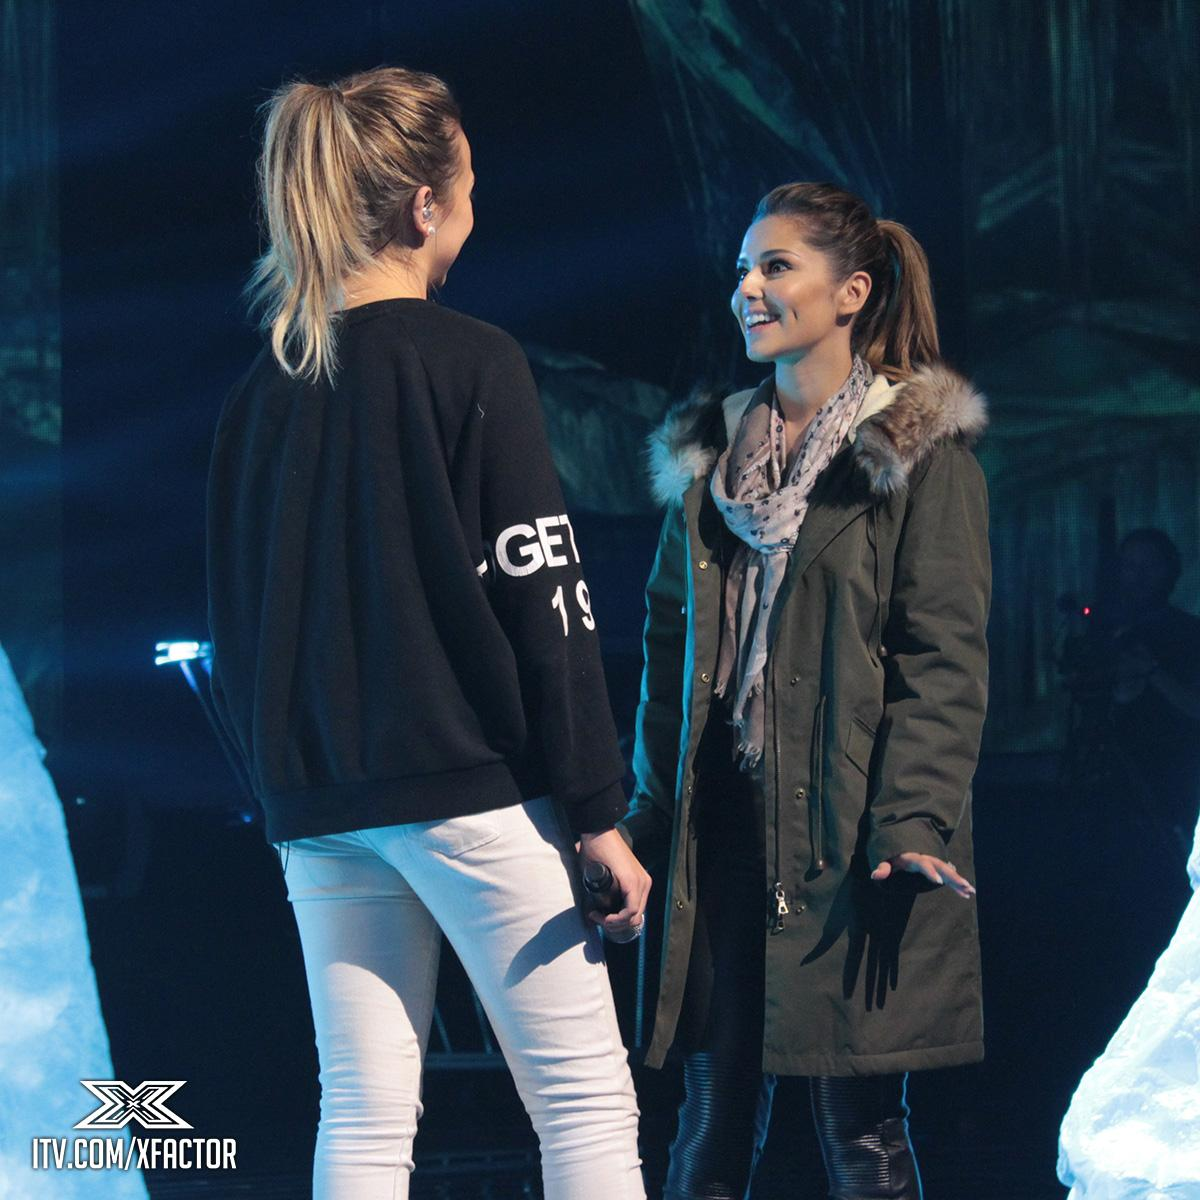 It's all smiles onstage in #XFactorRehearsals with @CherylOfficial and her Girl @laurenplatt7 💙 http://t.co/aE6GV1S0dt